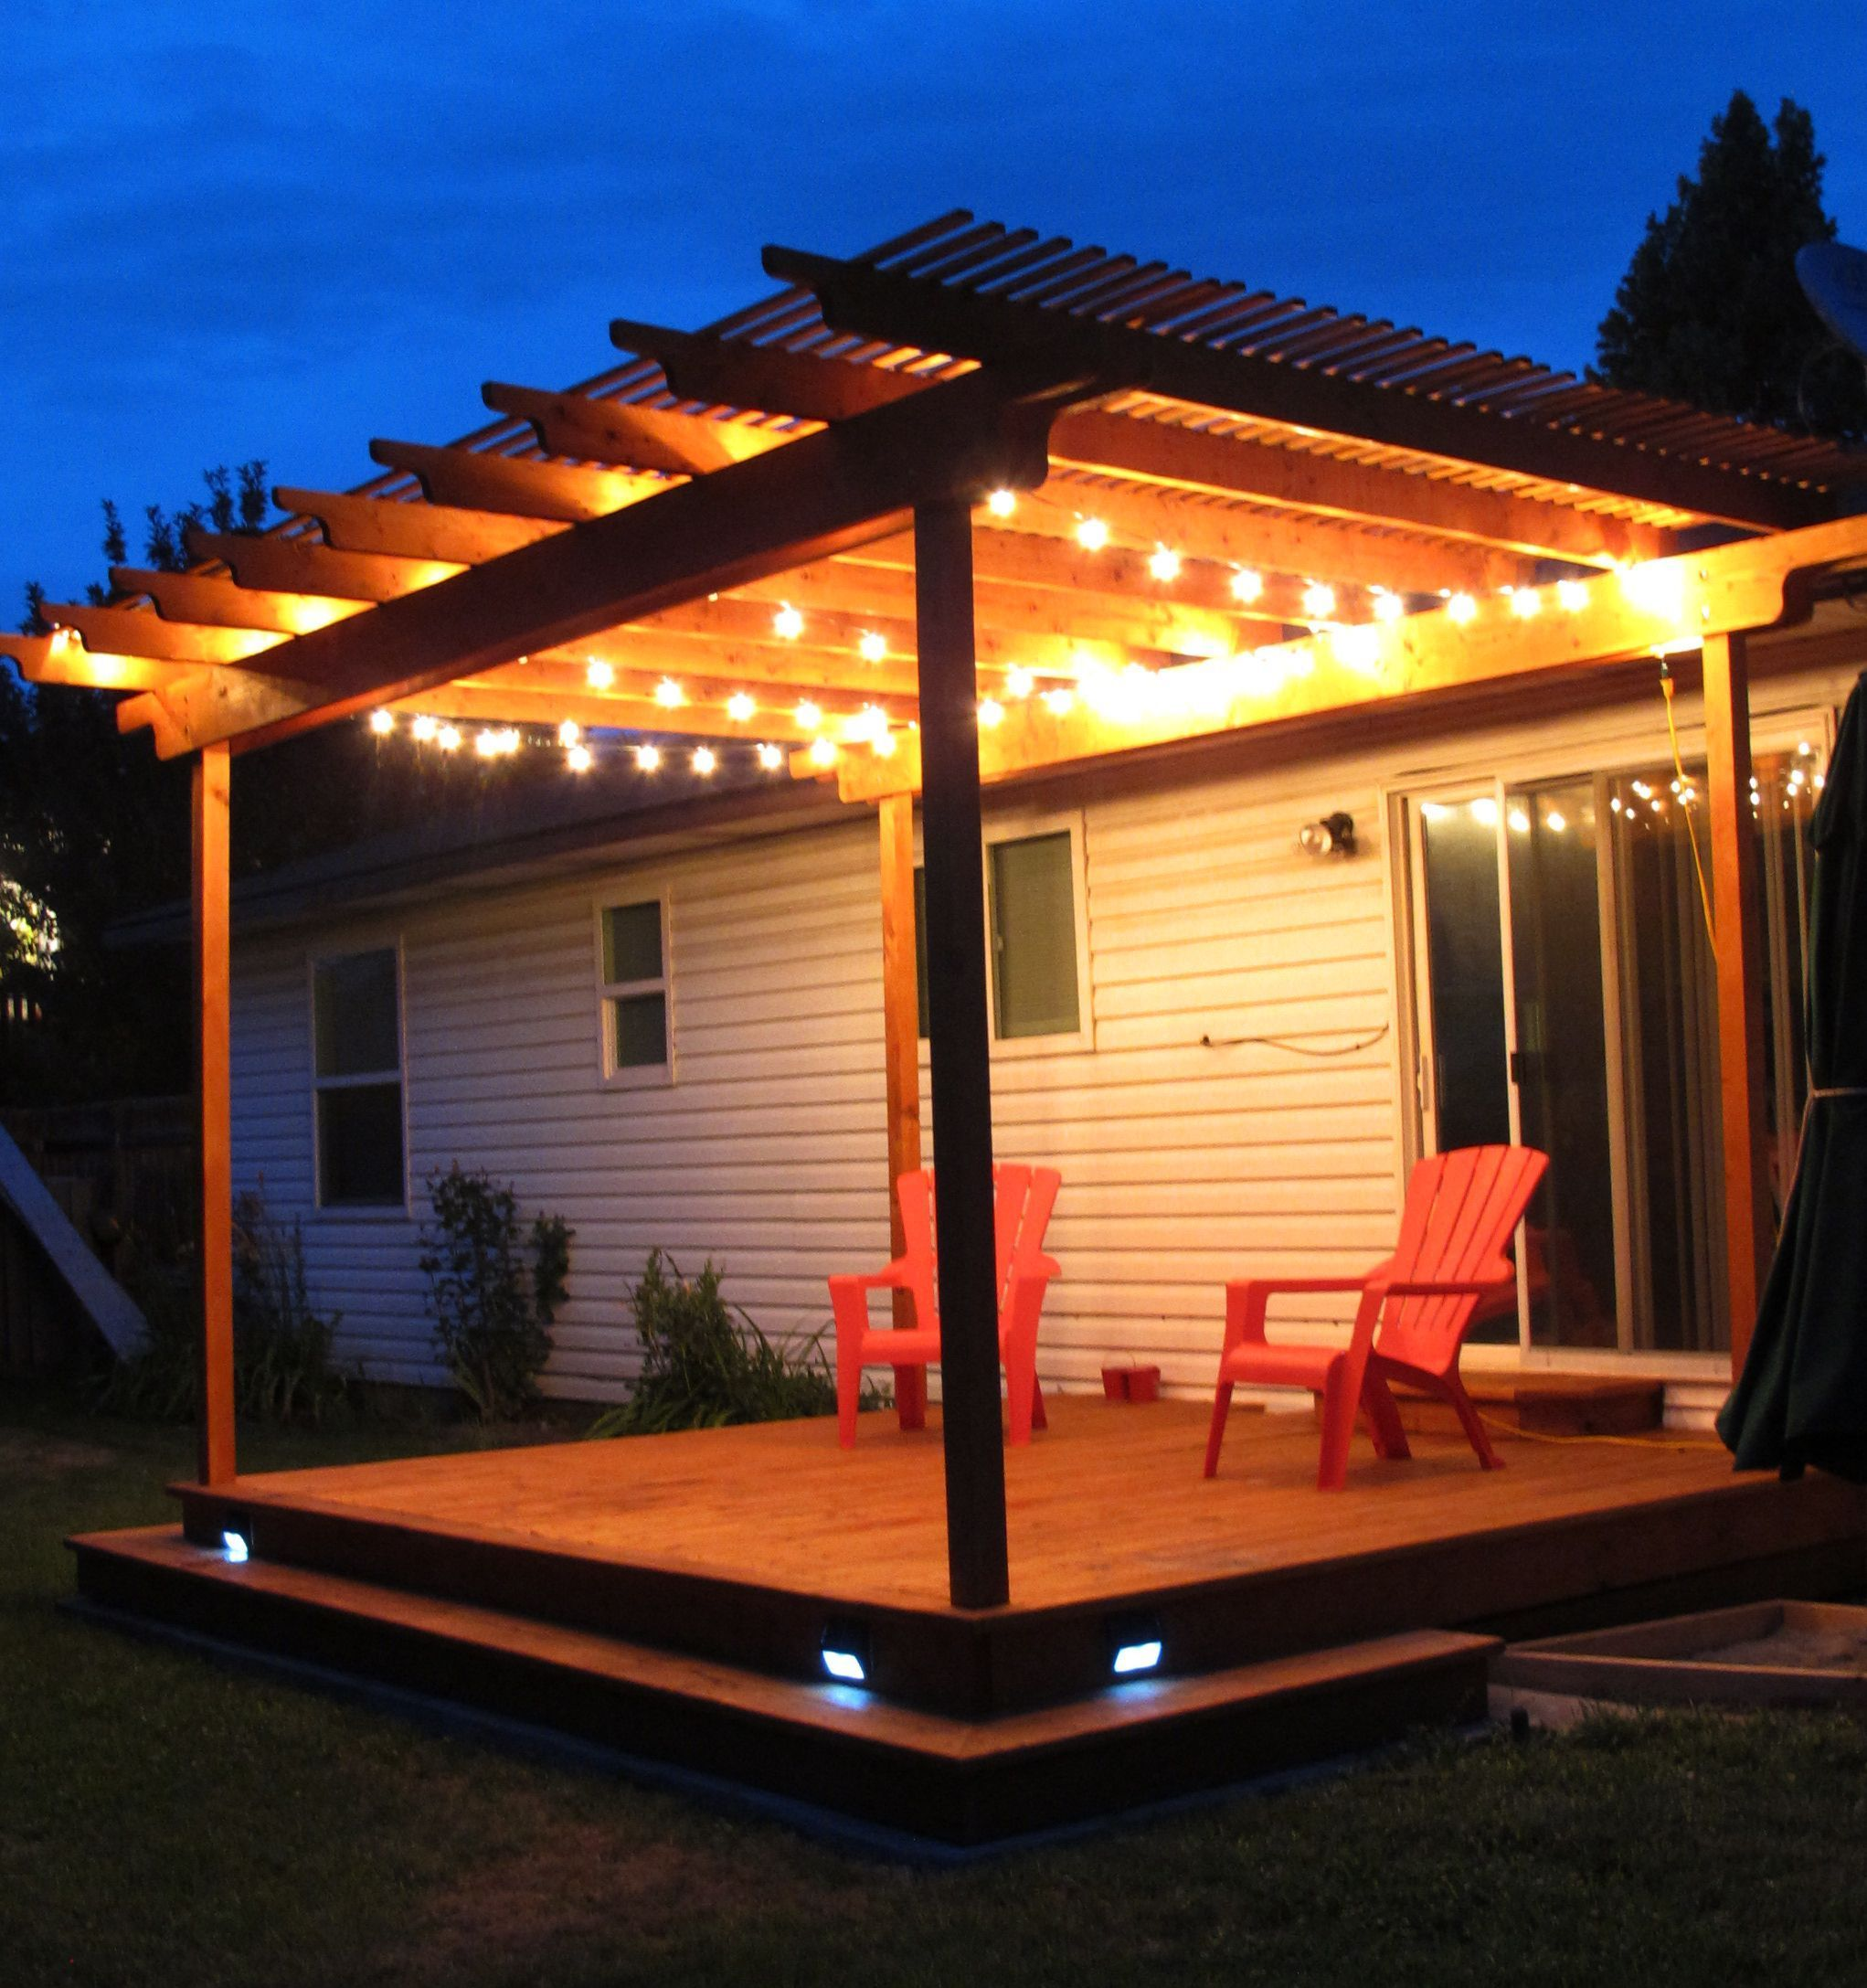 Awesome Pergola Deck With Wraparound Step And Strand Lighting It Also Has Solar Powered Stair Lighting This House Diy Outdoor Lighting Pergola Patio Pergola